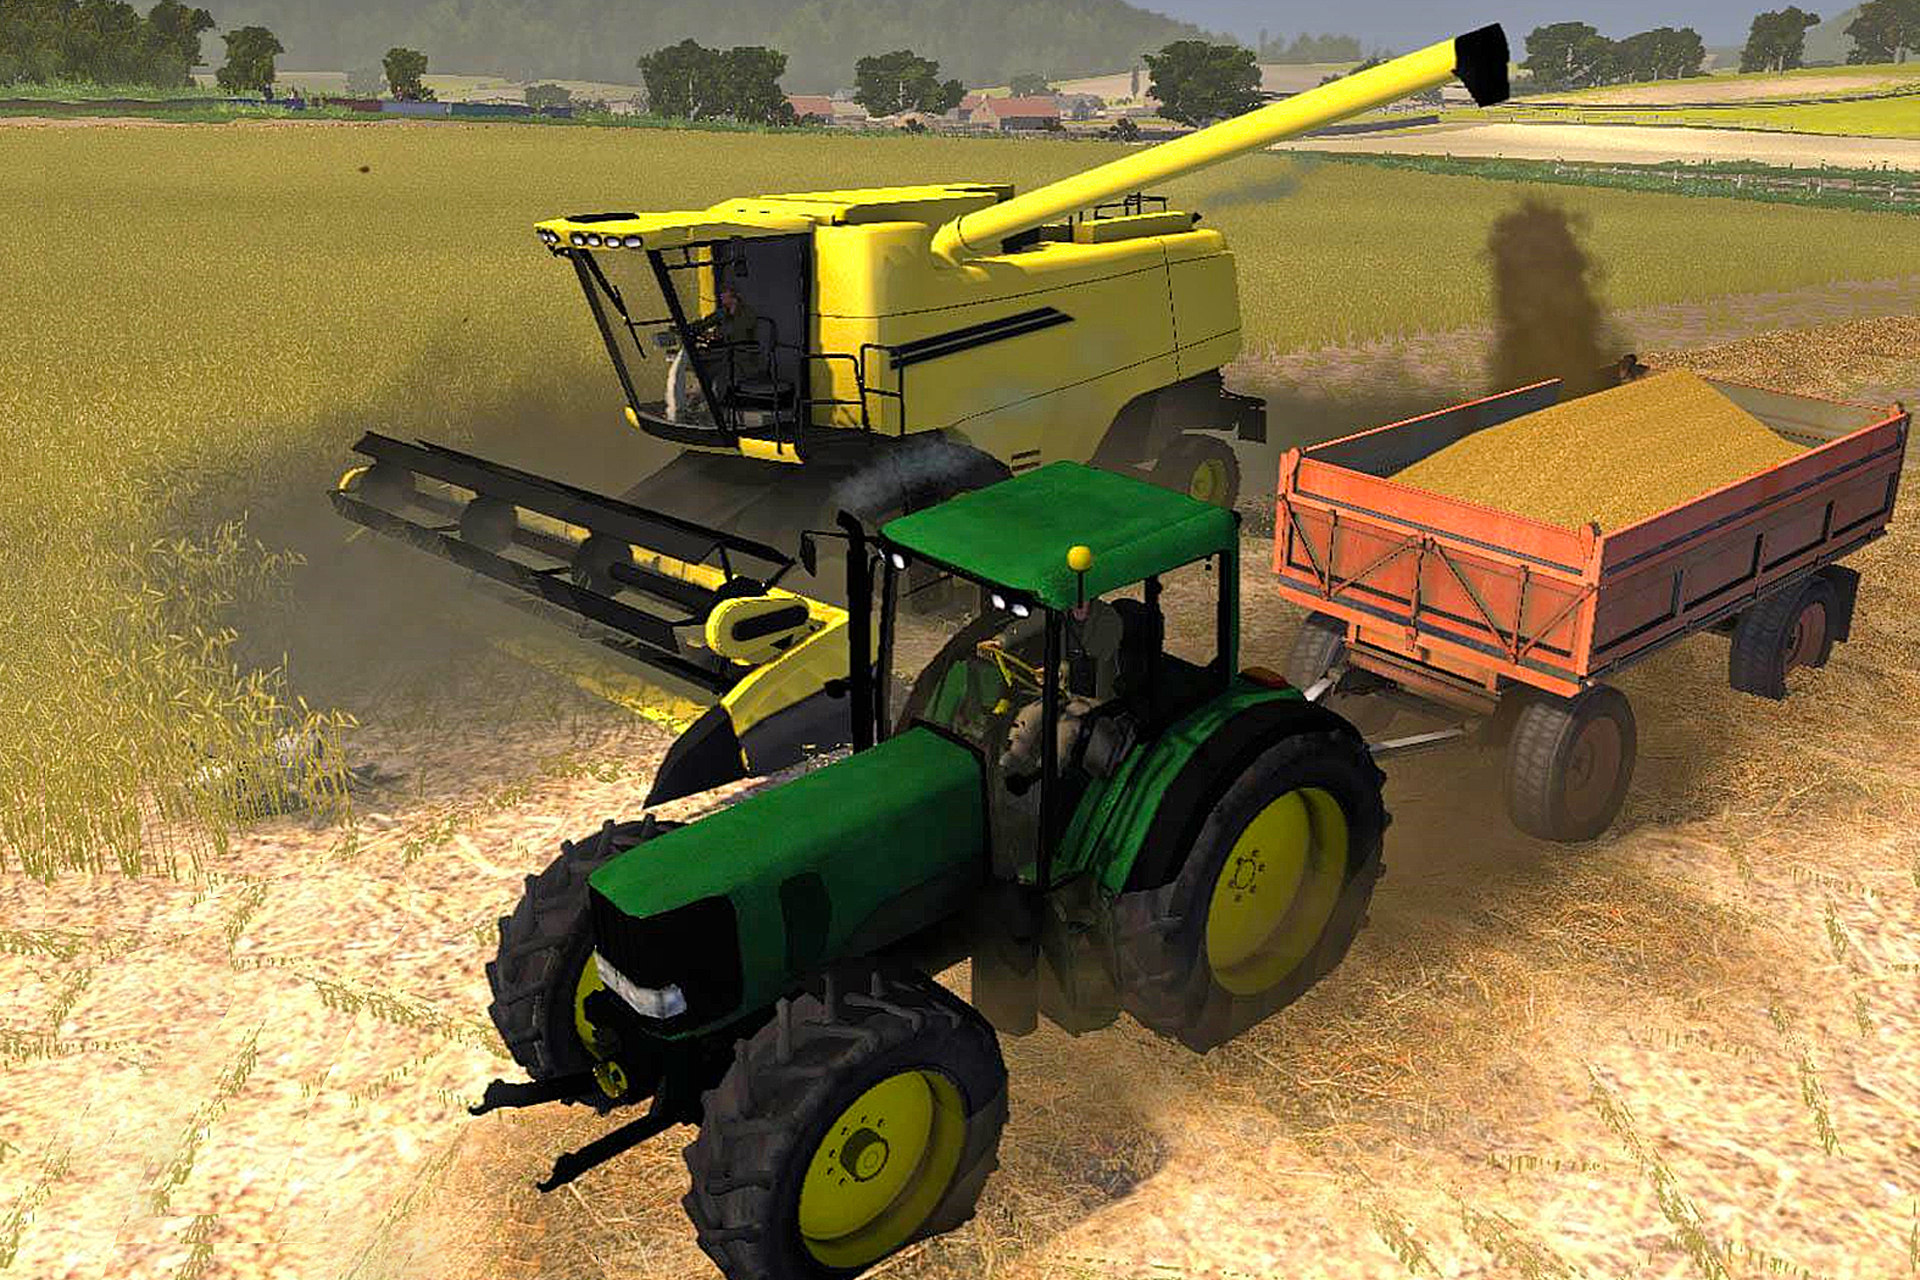 Farmer's Harvest 1920x1280 SCR002